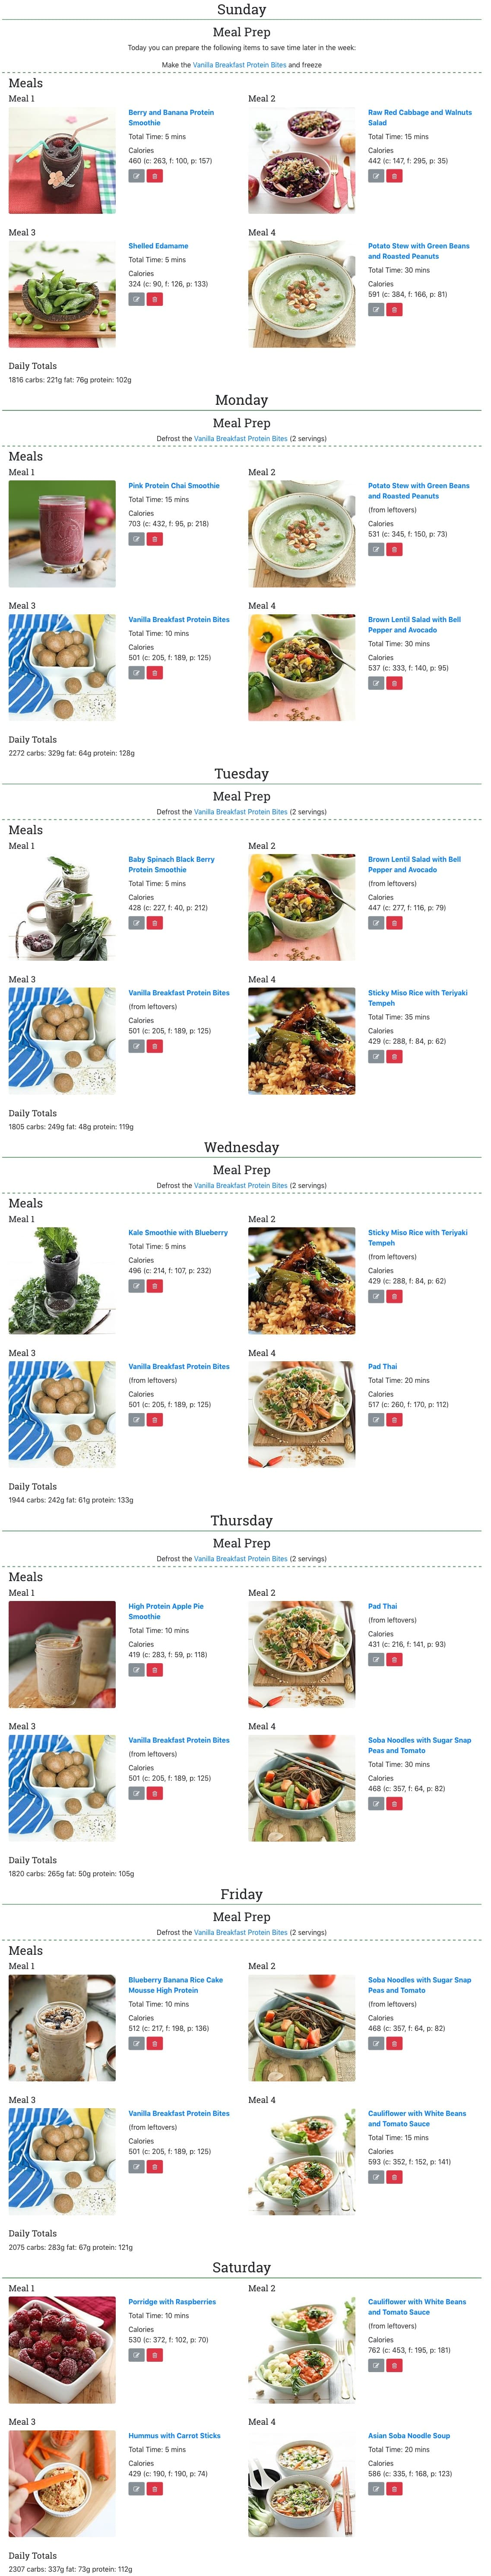 One week high protein vegan meal plan for women